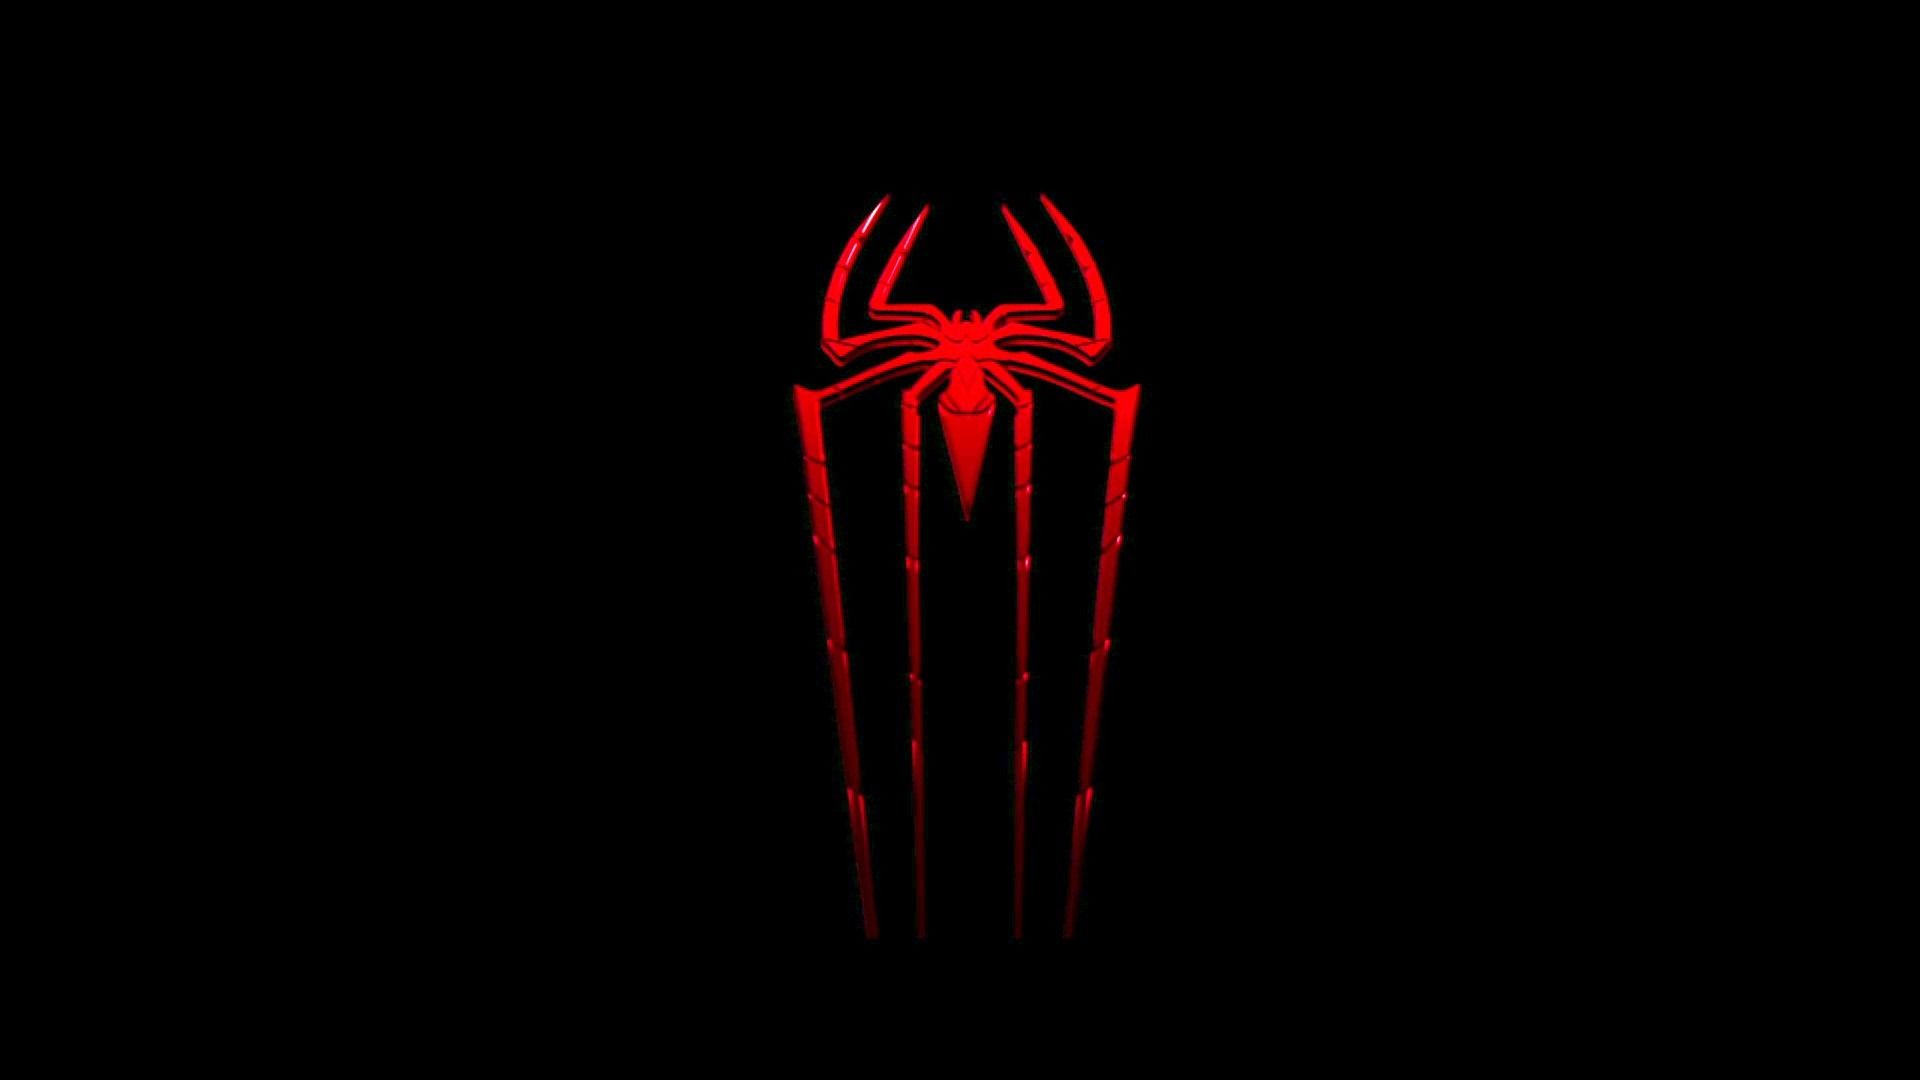 Click To Download Spiderman Logo Wallpaper Desktop Ng4 To Your Desktop Or Another Devices Good Luck Logo Wallpaper Hd Spiderman Images Black Wallpaper Iphone